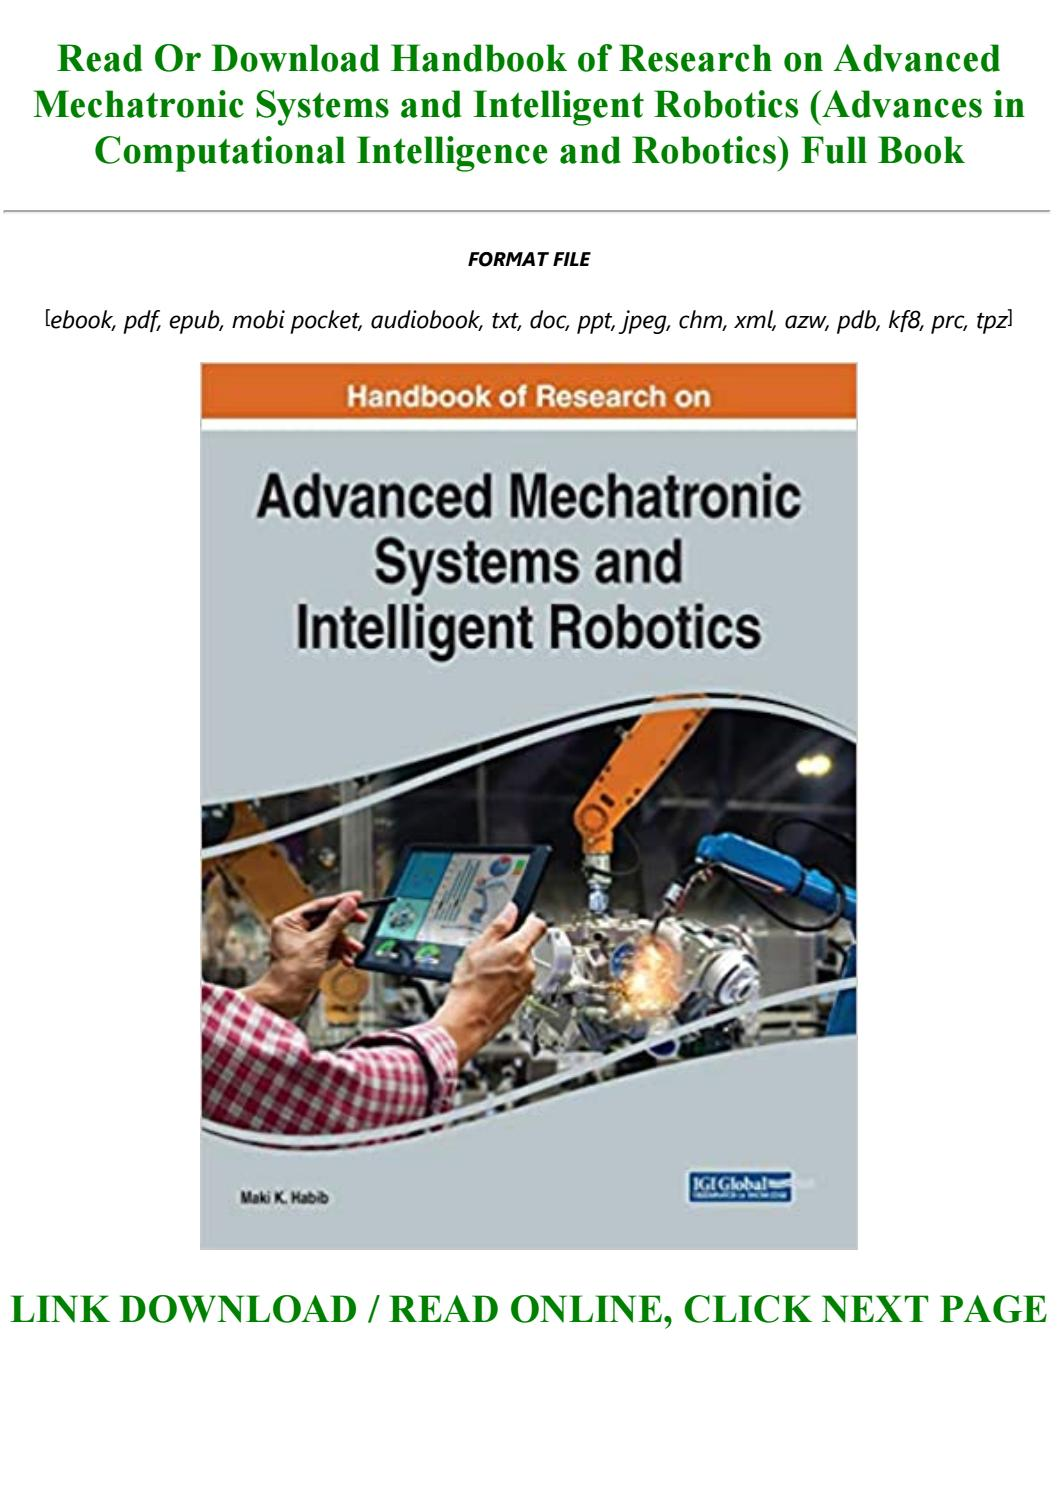 Pdf D O W N L O A D Handbook Of Research On Advanced Mechatronic Systems And Intelligent Robotic By Lonnitzsche1o1 Issuu